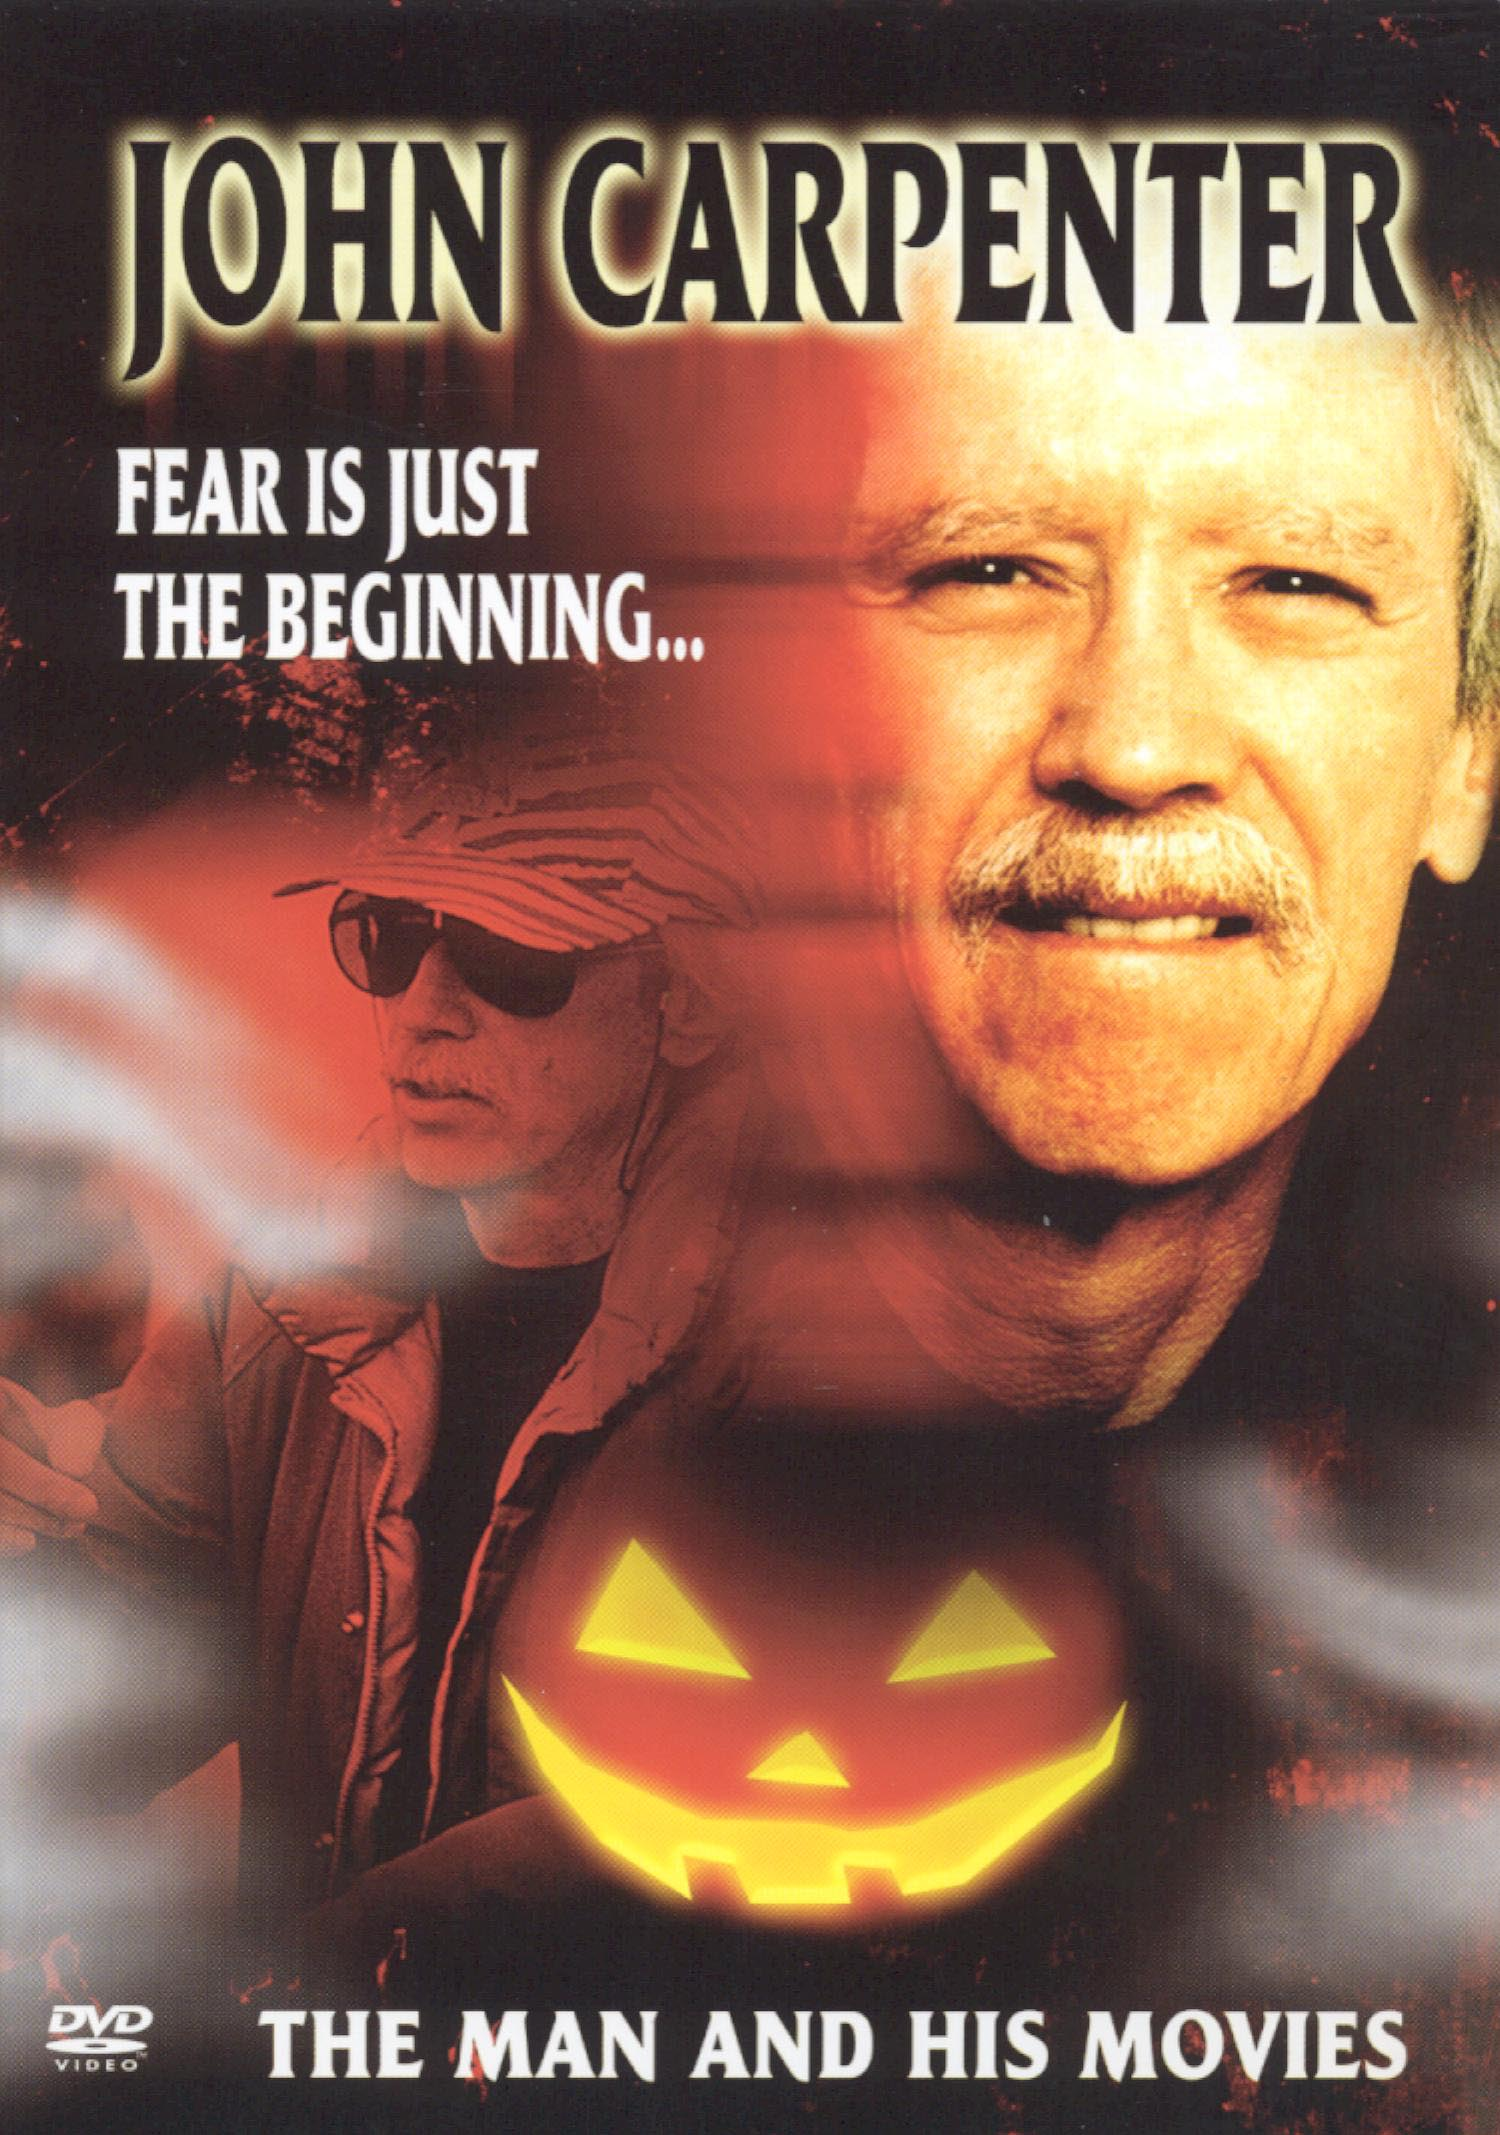 John Carpenter: Fear Is Just the Beginning... The Man and His Movies